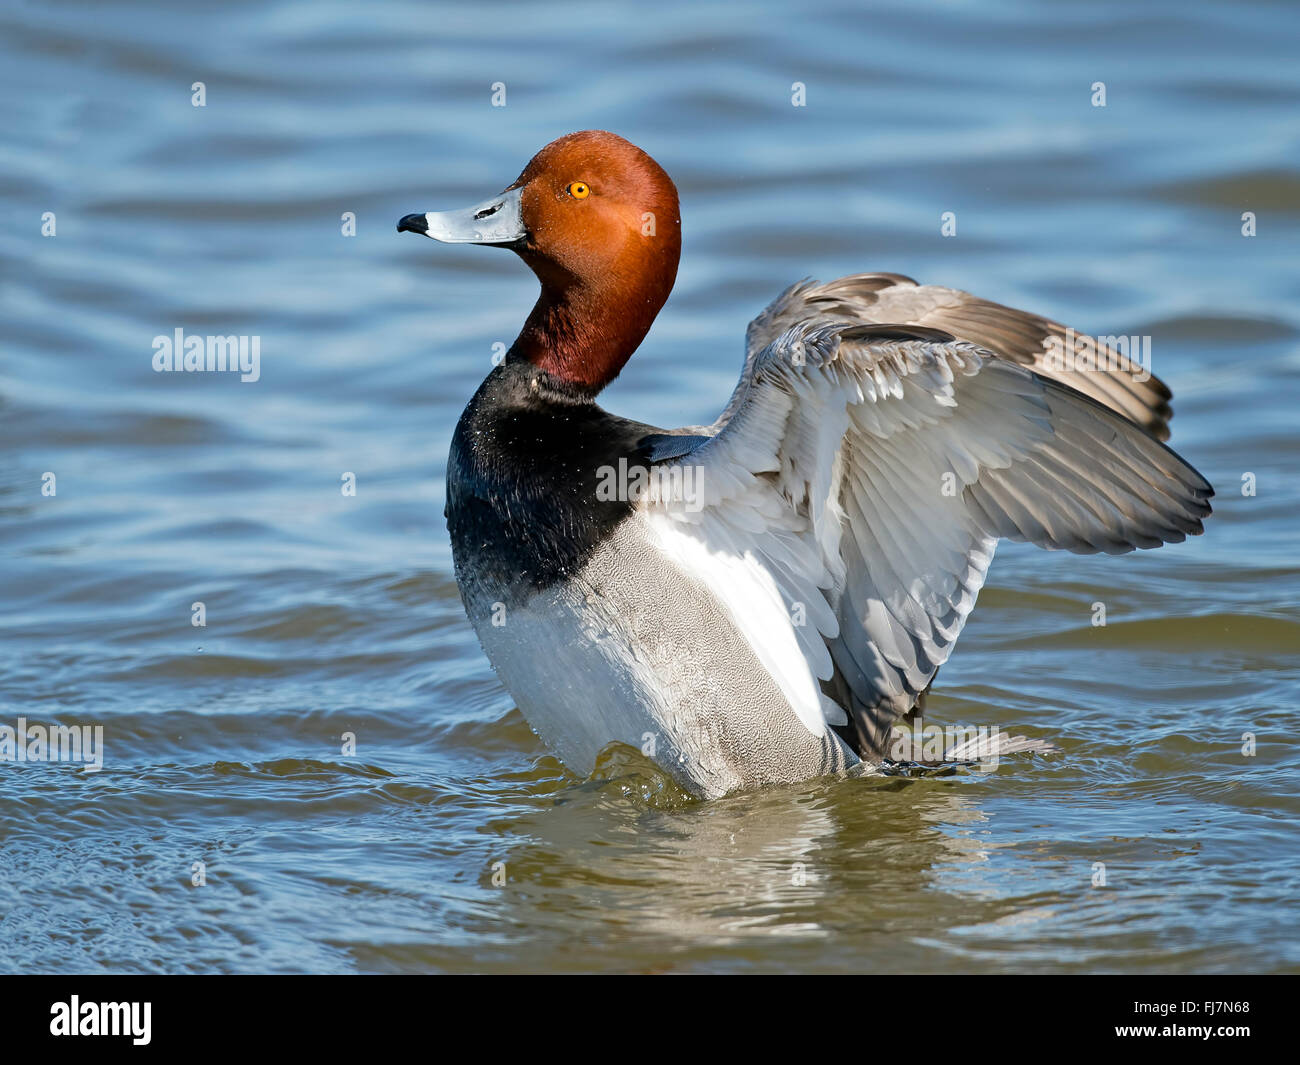 Male Redhead Duck Flapping Wings - Stock Image